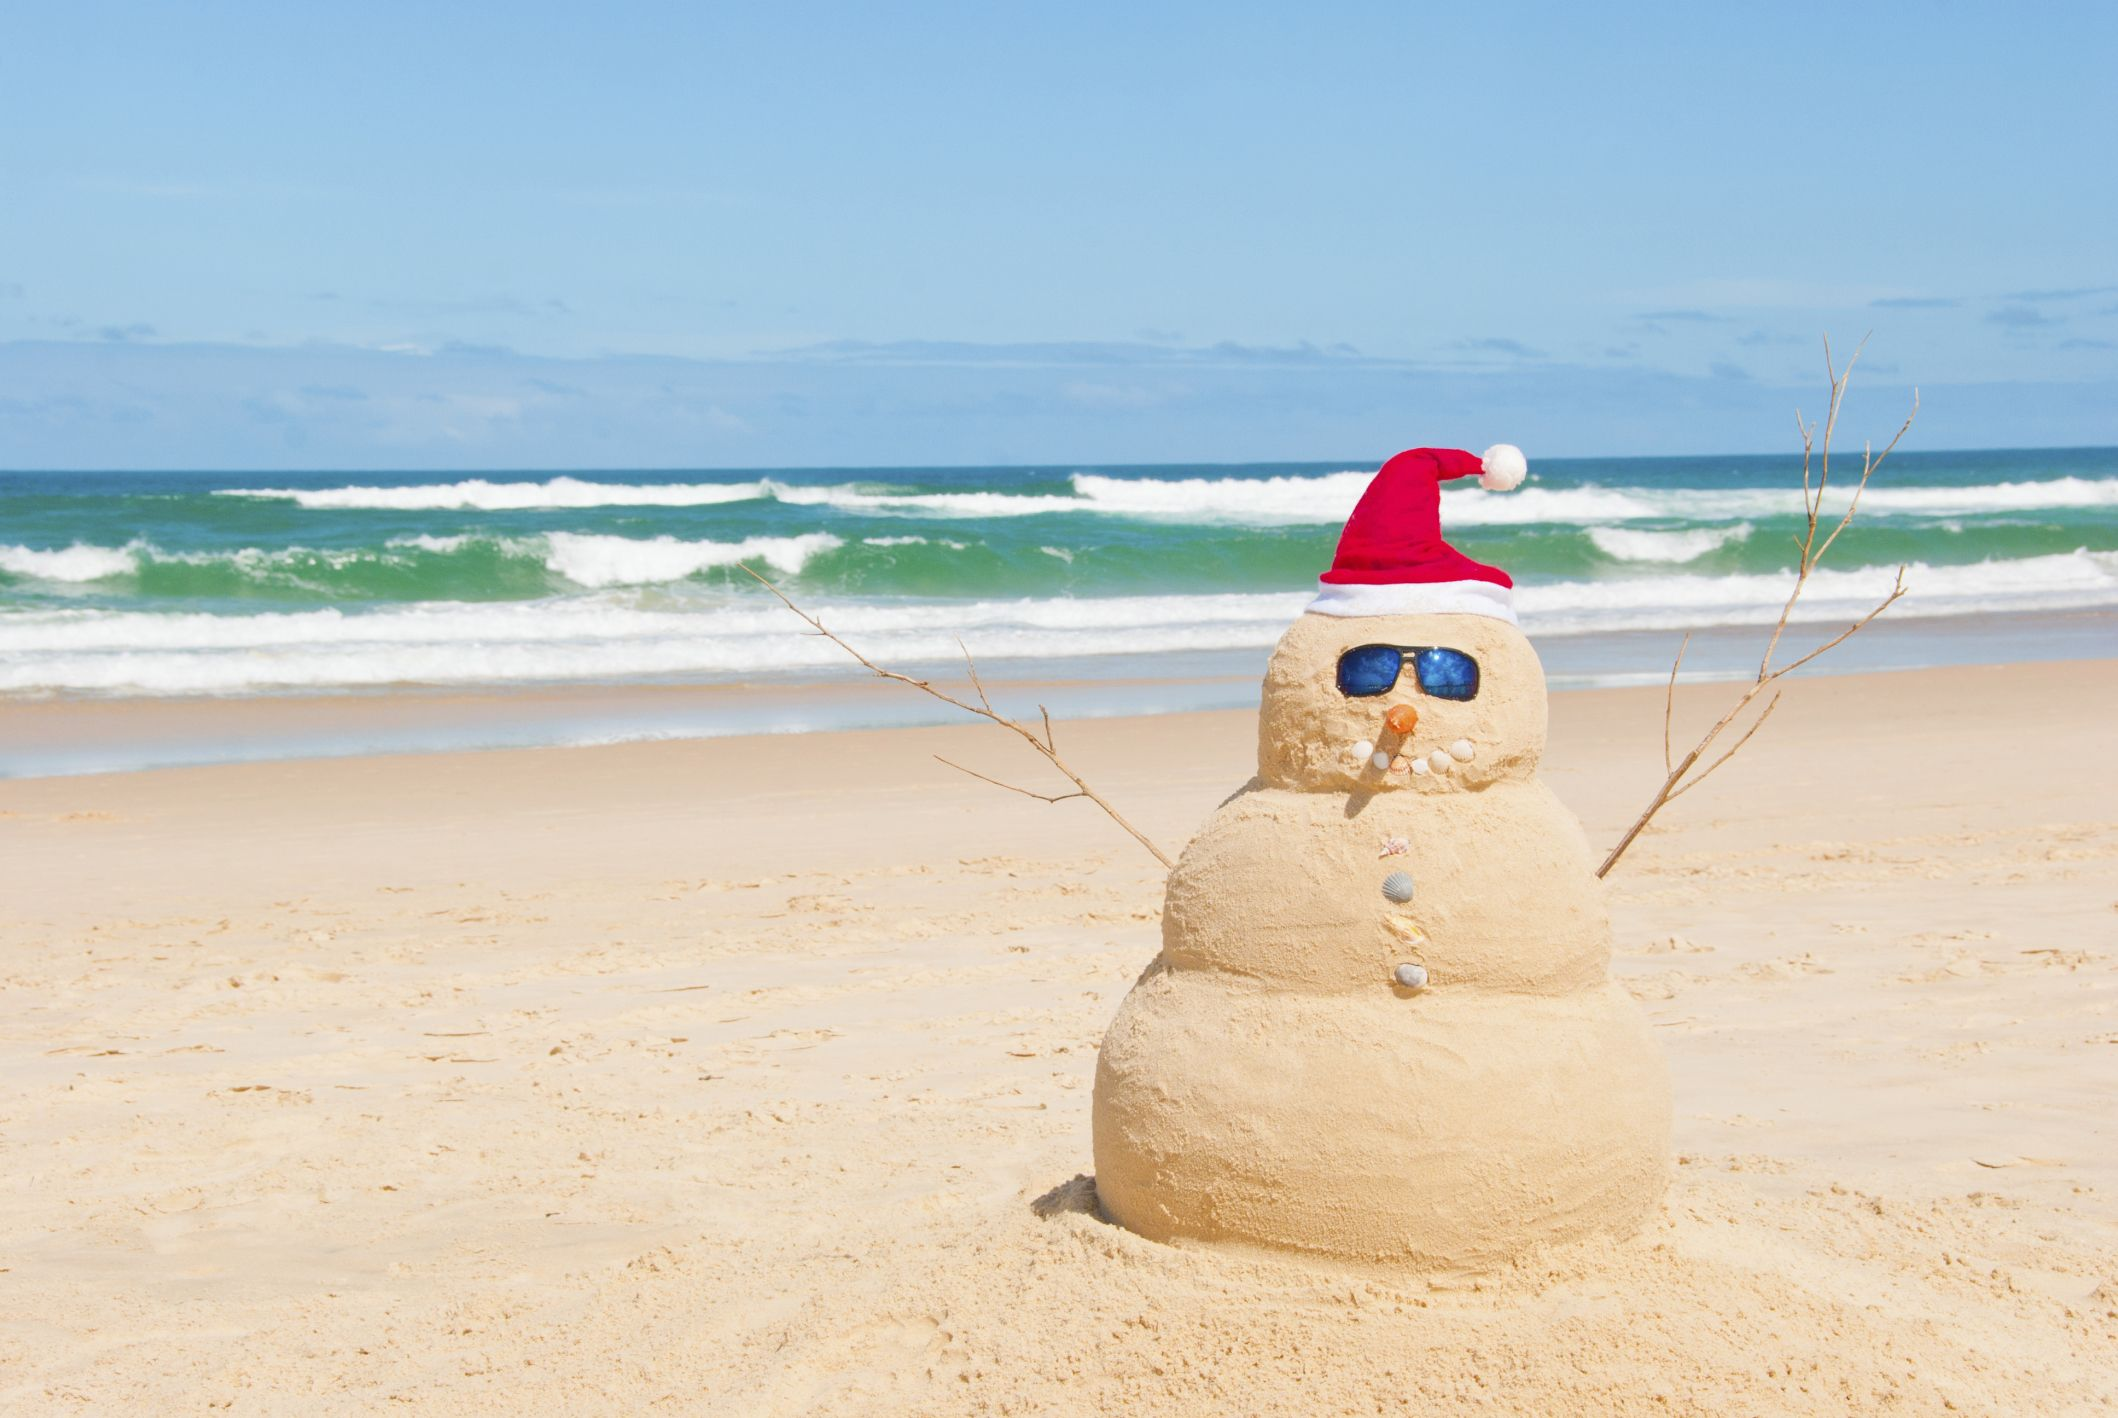 Christmas In July Background Images.Xmas In July 8 Ways To Get A Head Start On Holiday